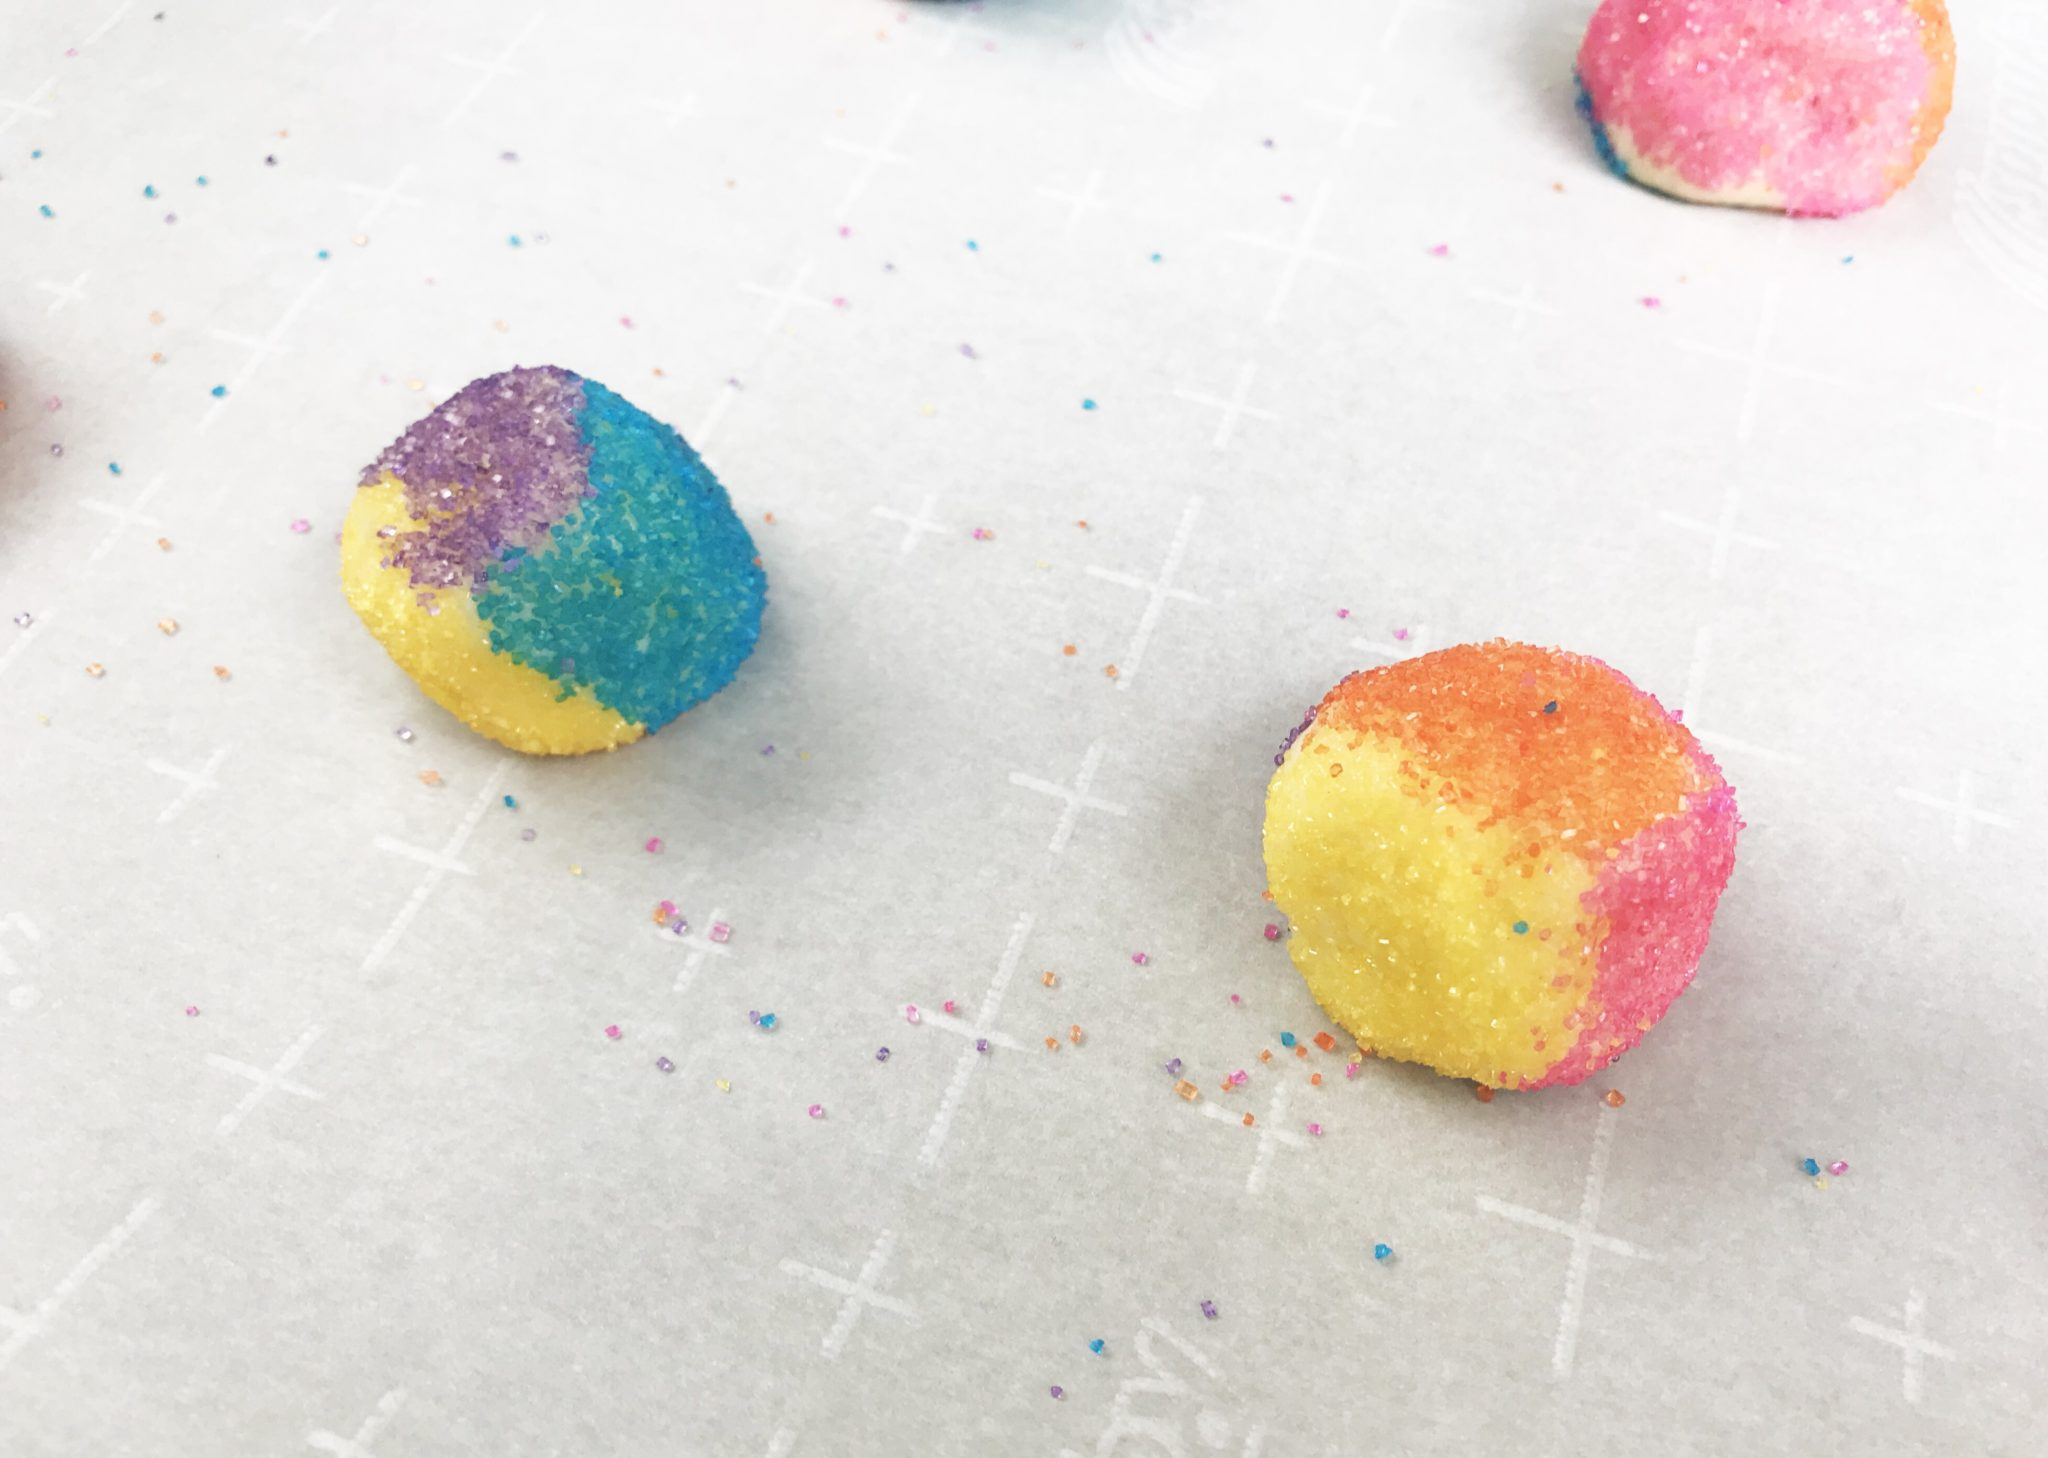 These Unicorn Kiss Cookies are a magical and delicious treat. Whip up this recipe in under a half hour and impress your family with these colorful cookies!